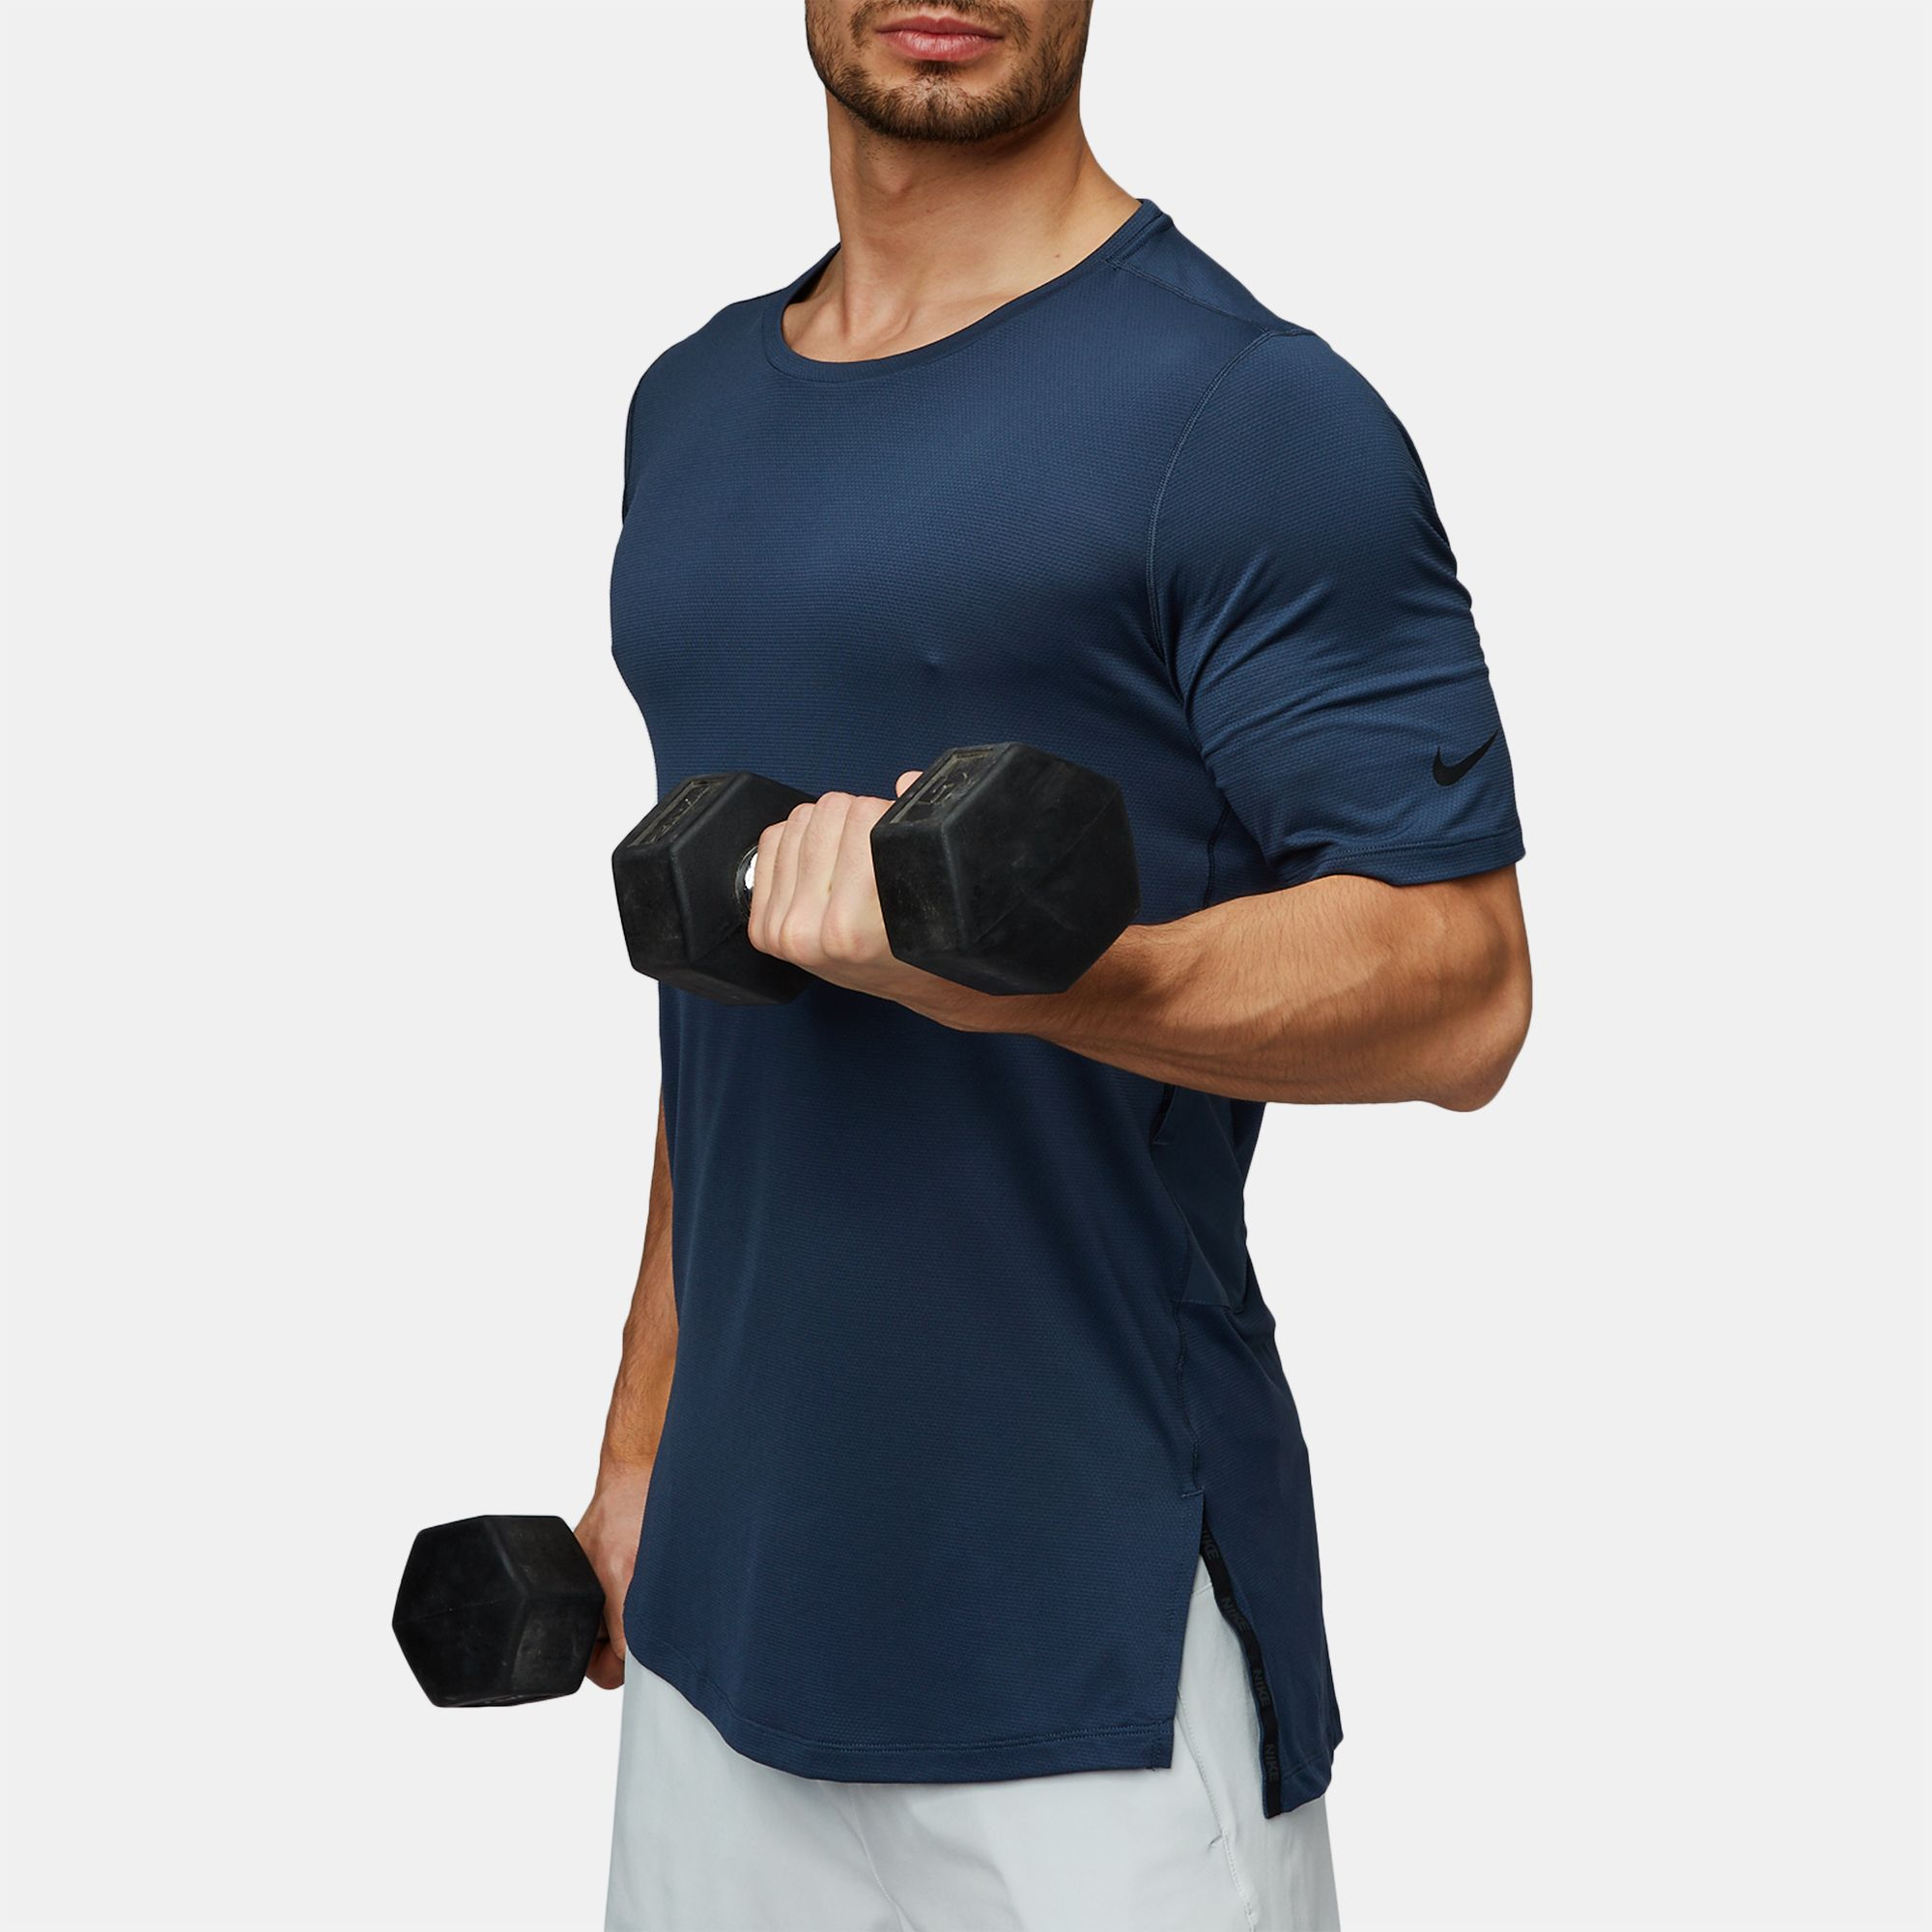 079f8fc4 Shop Blue Nike Utility Fitted Training T-Shirt for Mens by Nike | SSS